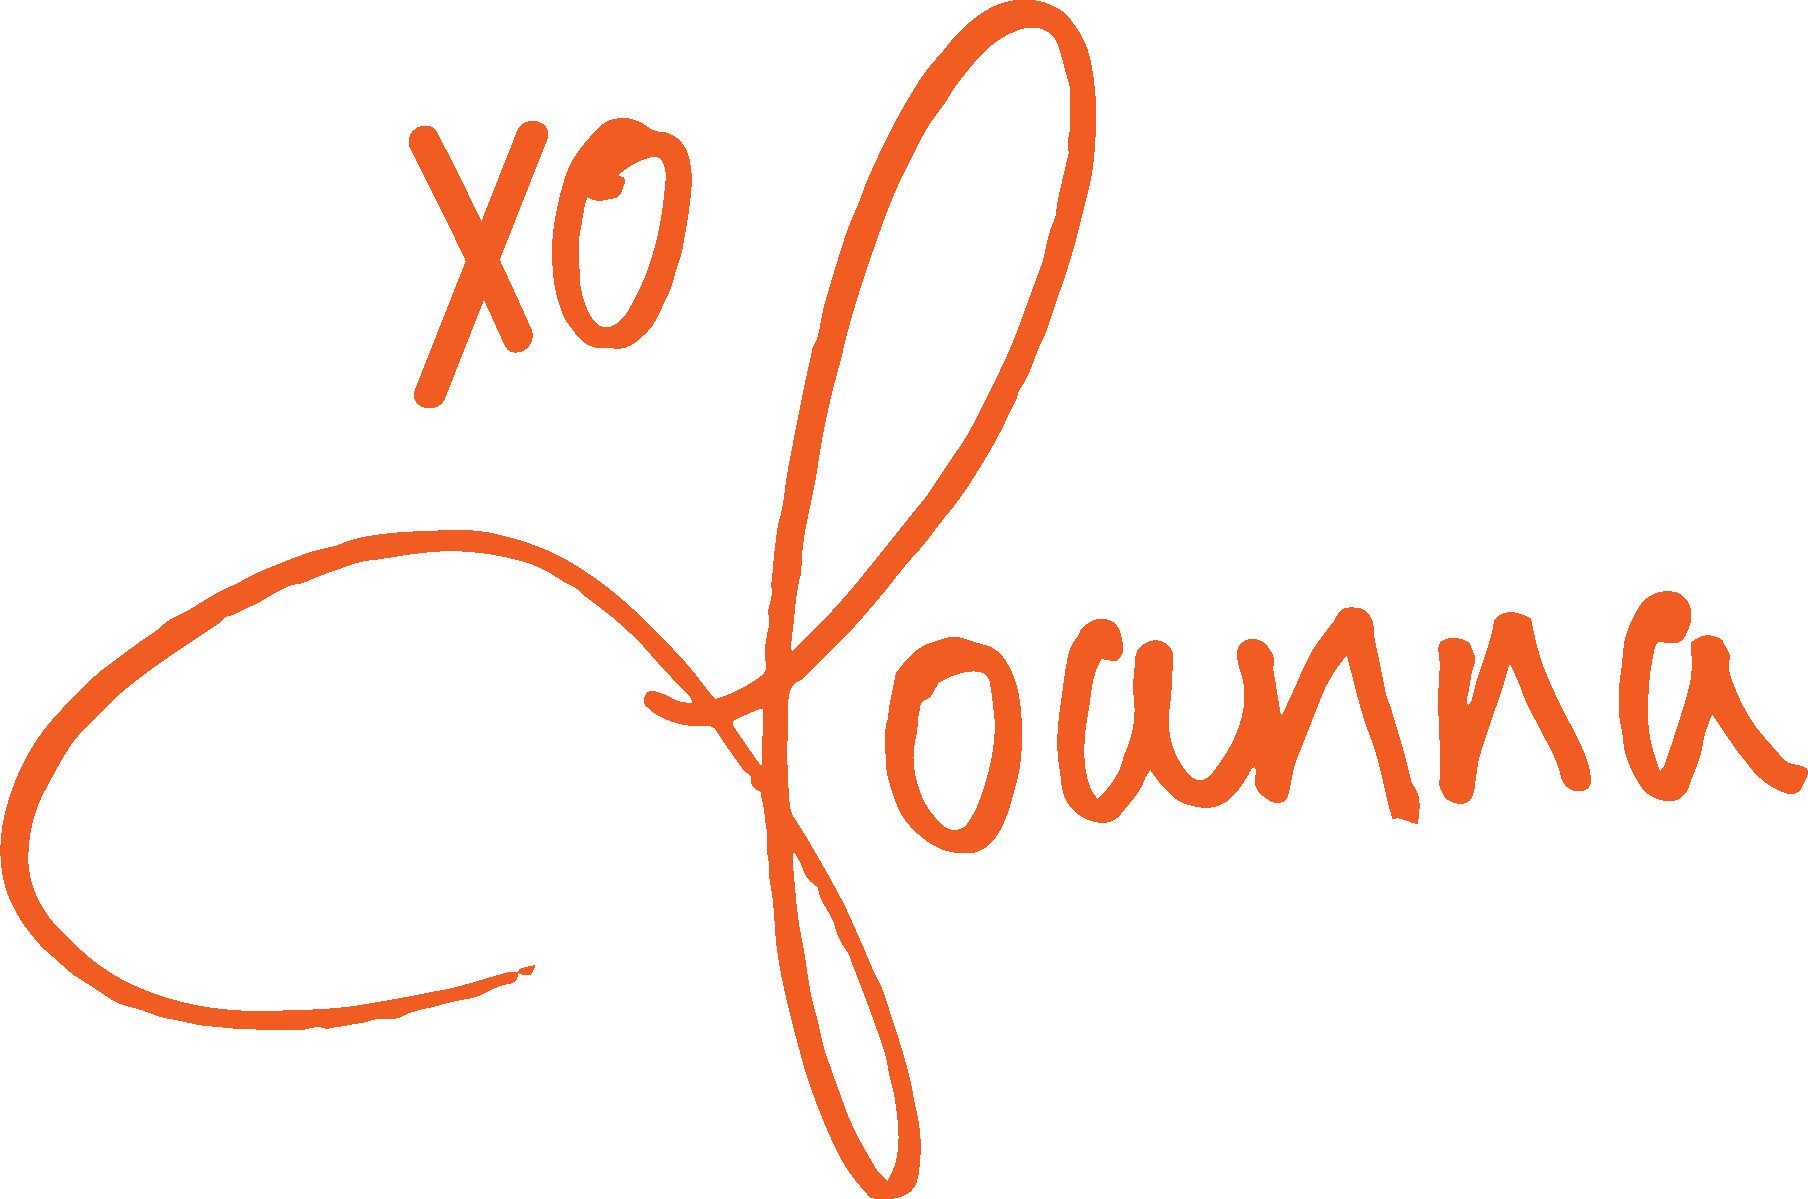 Xo Joanna - orange.jpeg